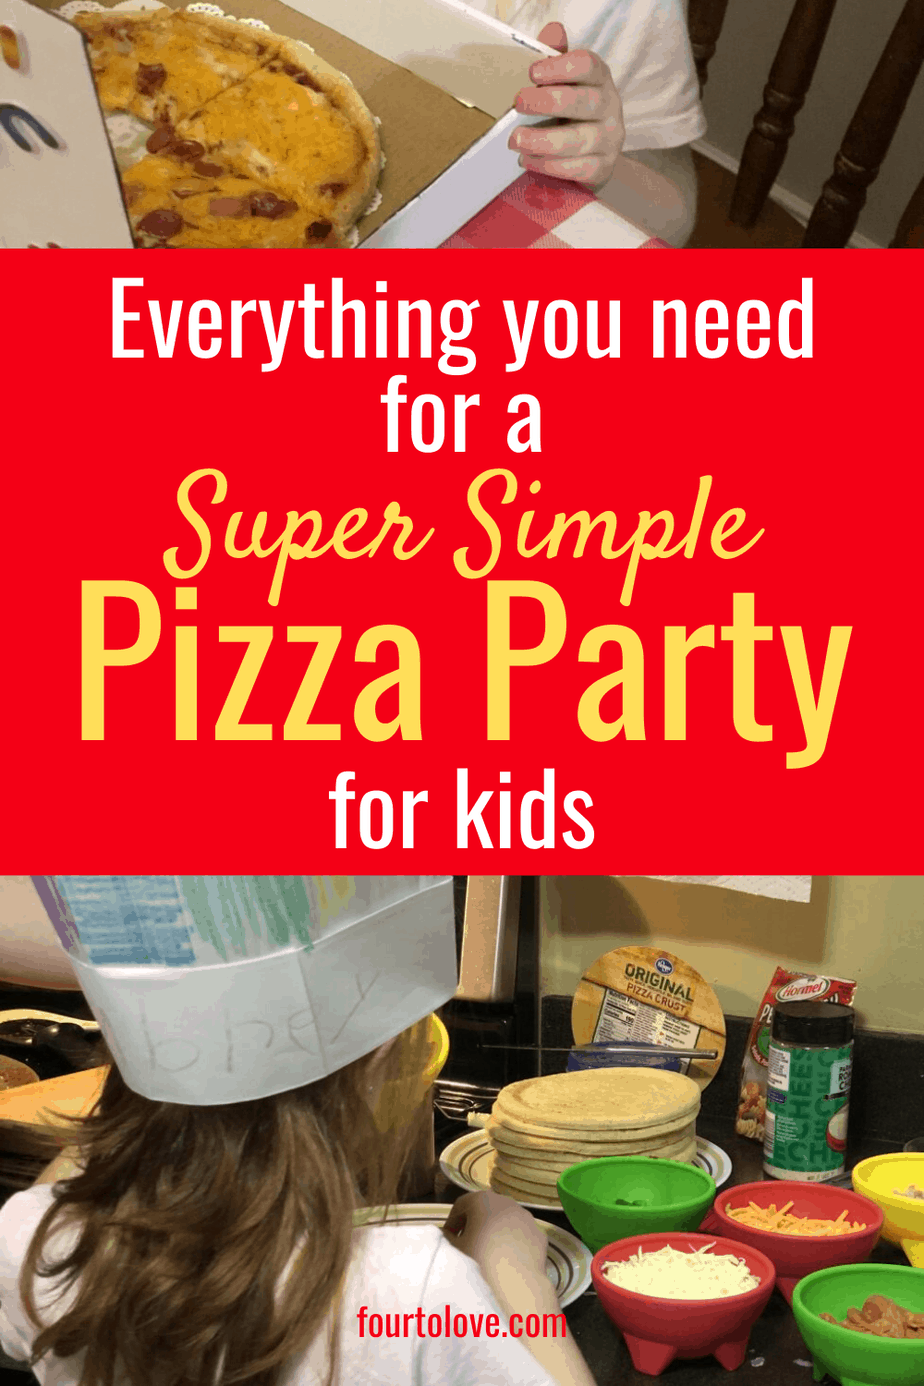 Everything you need for a super simple pizza party for kids